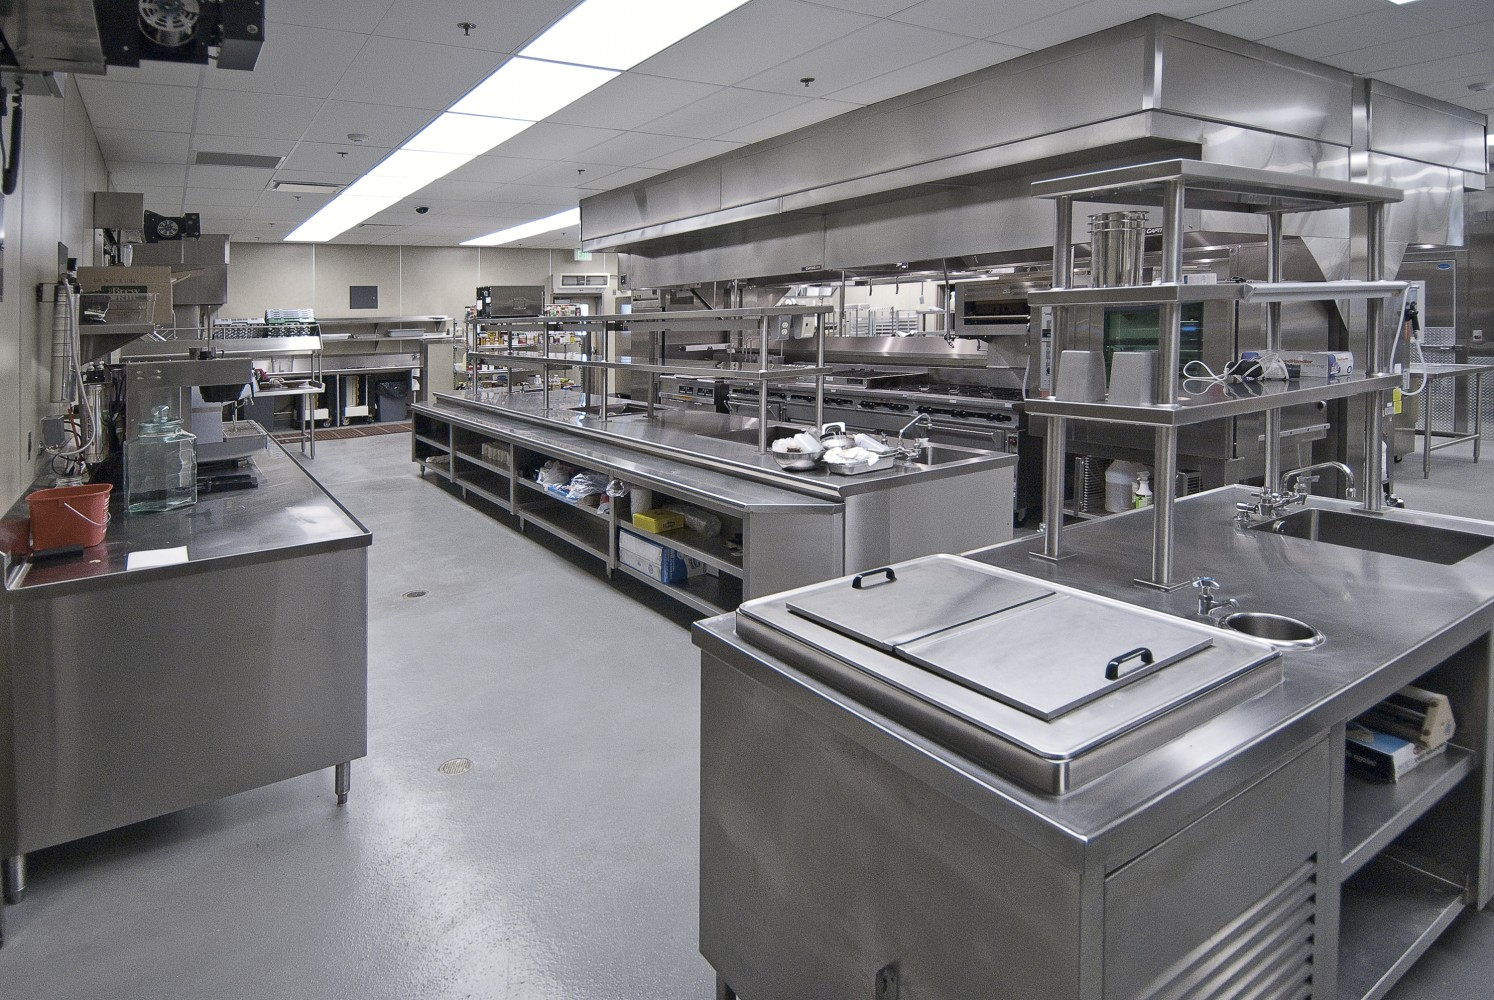 Commercial Kitchen & Catering Equipment For All of Your Cooking Needs! - We offer  an extensive  selection of used commercial kitchen equipment, from refrigerators and coolers to convection ovens, griddles,deep fryers and much more. Find all of your Stainless  Steel and  NSF approved equipment here at bargain prices.